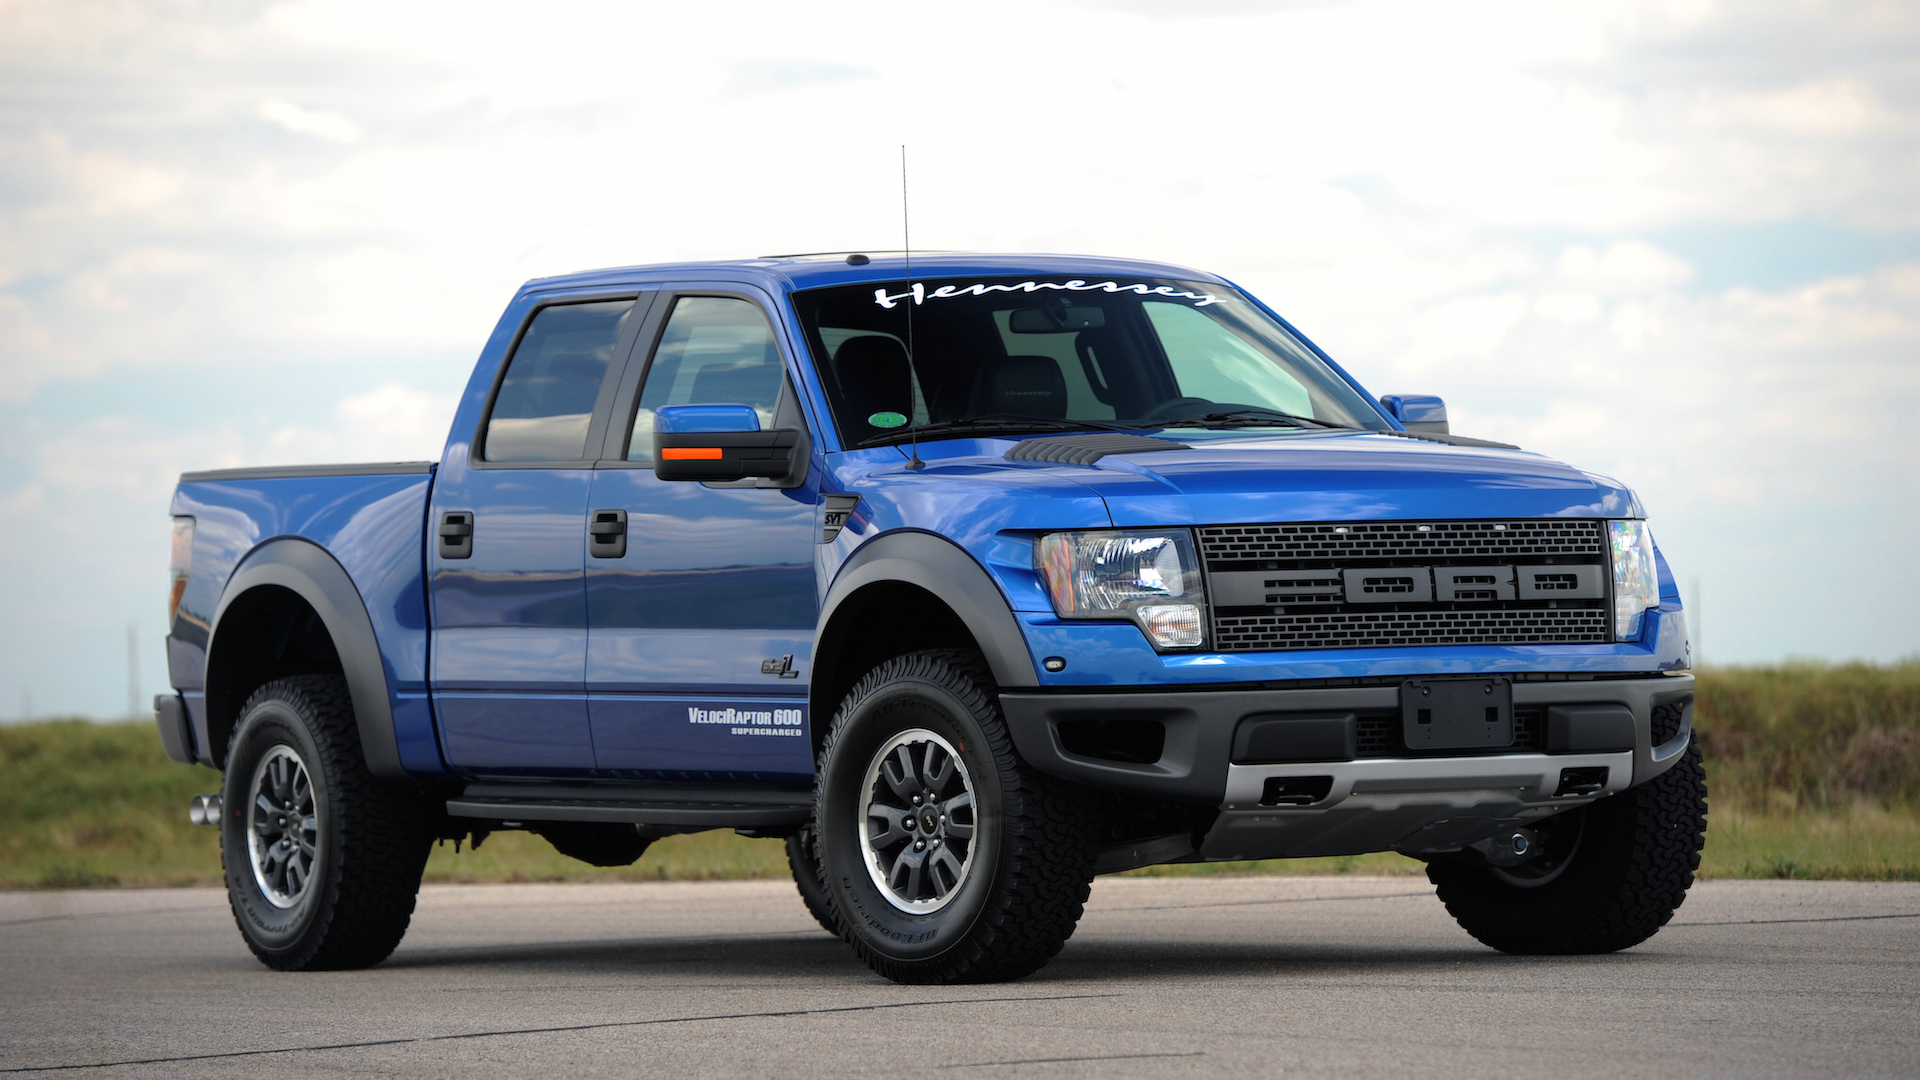 hennessey velociraptor 600 and 800 based on ford f 150 svt raptor 6 2. Black Bedroom Furniture Sets. Home Design Ideas